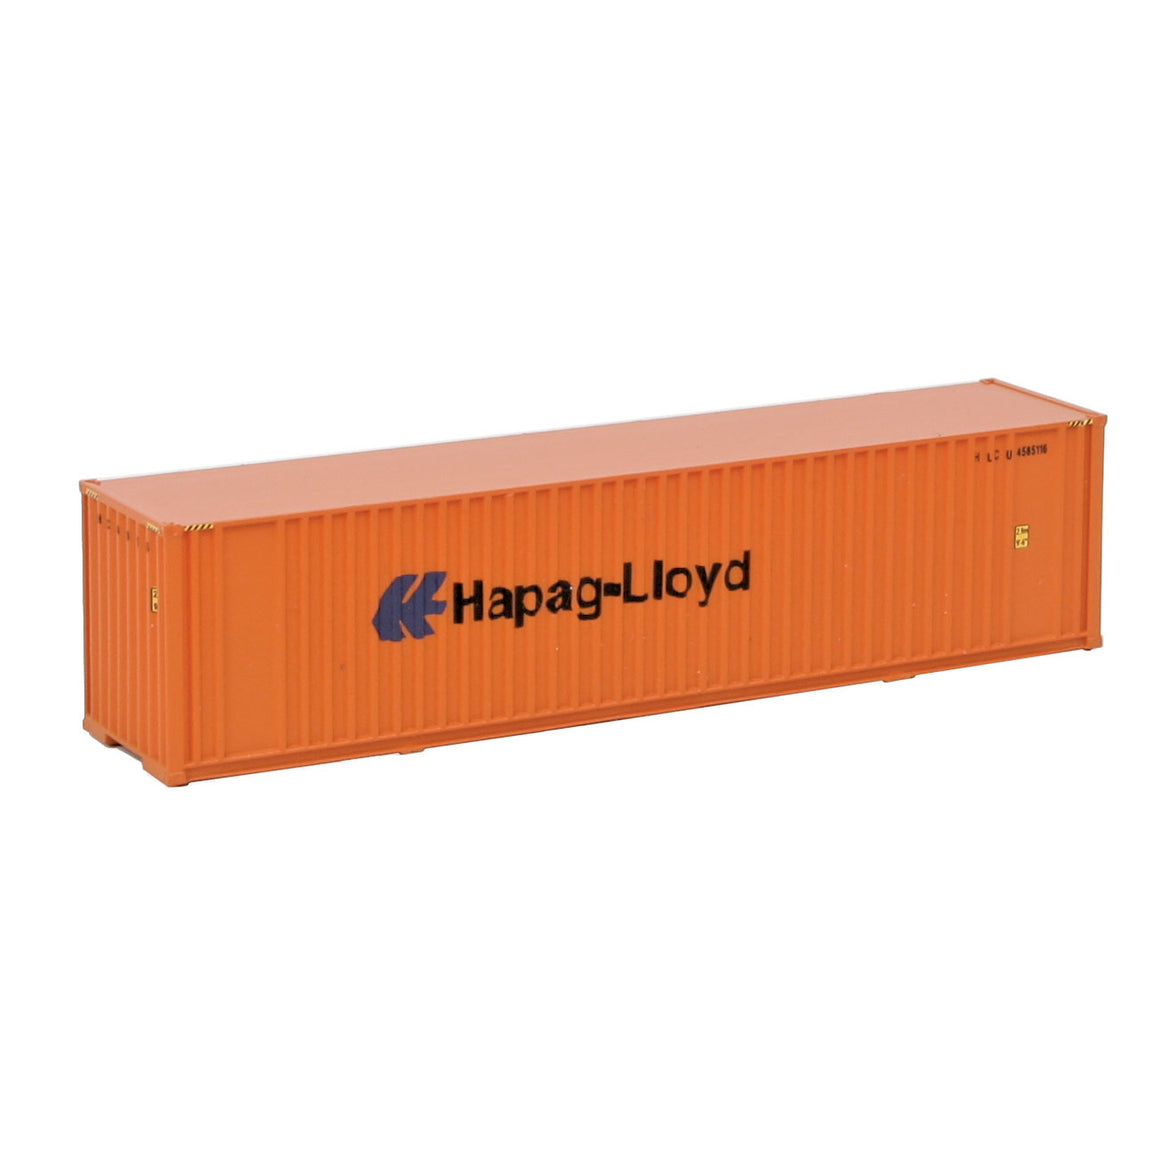 N Scale: 40' Hi Cube Ribbed Side Container - Hapag-Lloyd